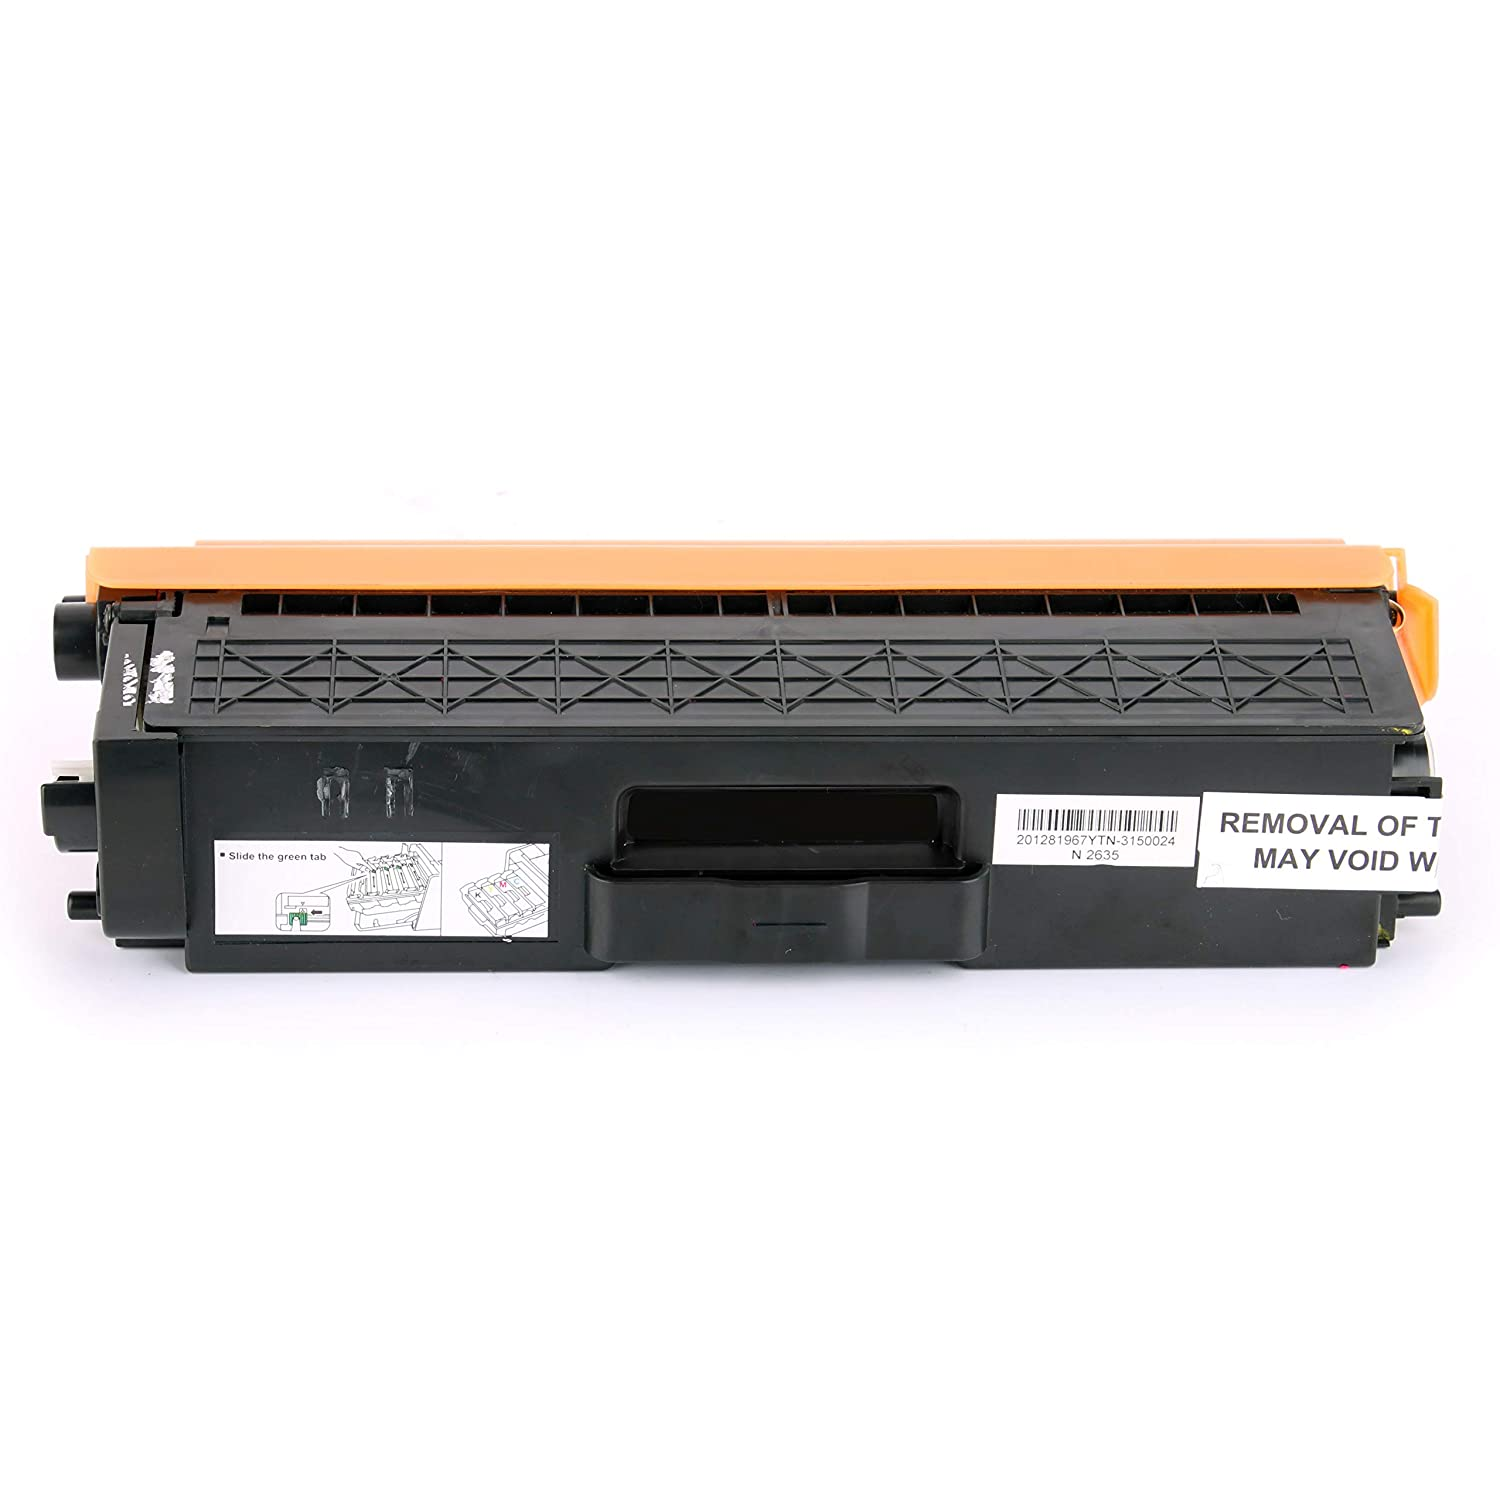 Printers, Scanners & Supplies Black Laser 2500 Page Brother ...